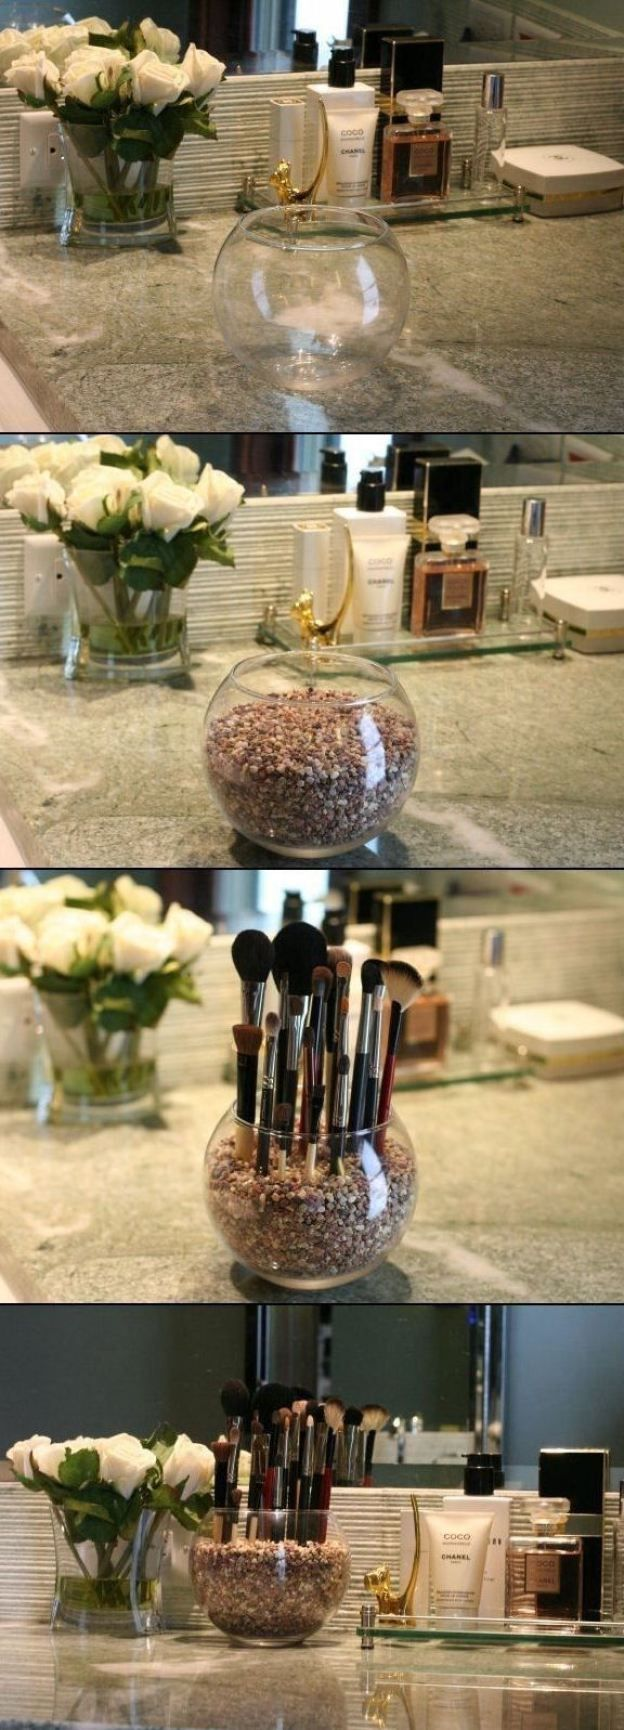 diy makeup brush organizer ideas